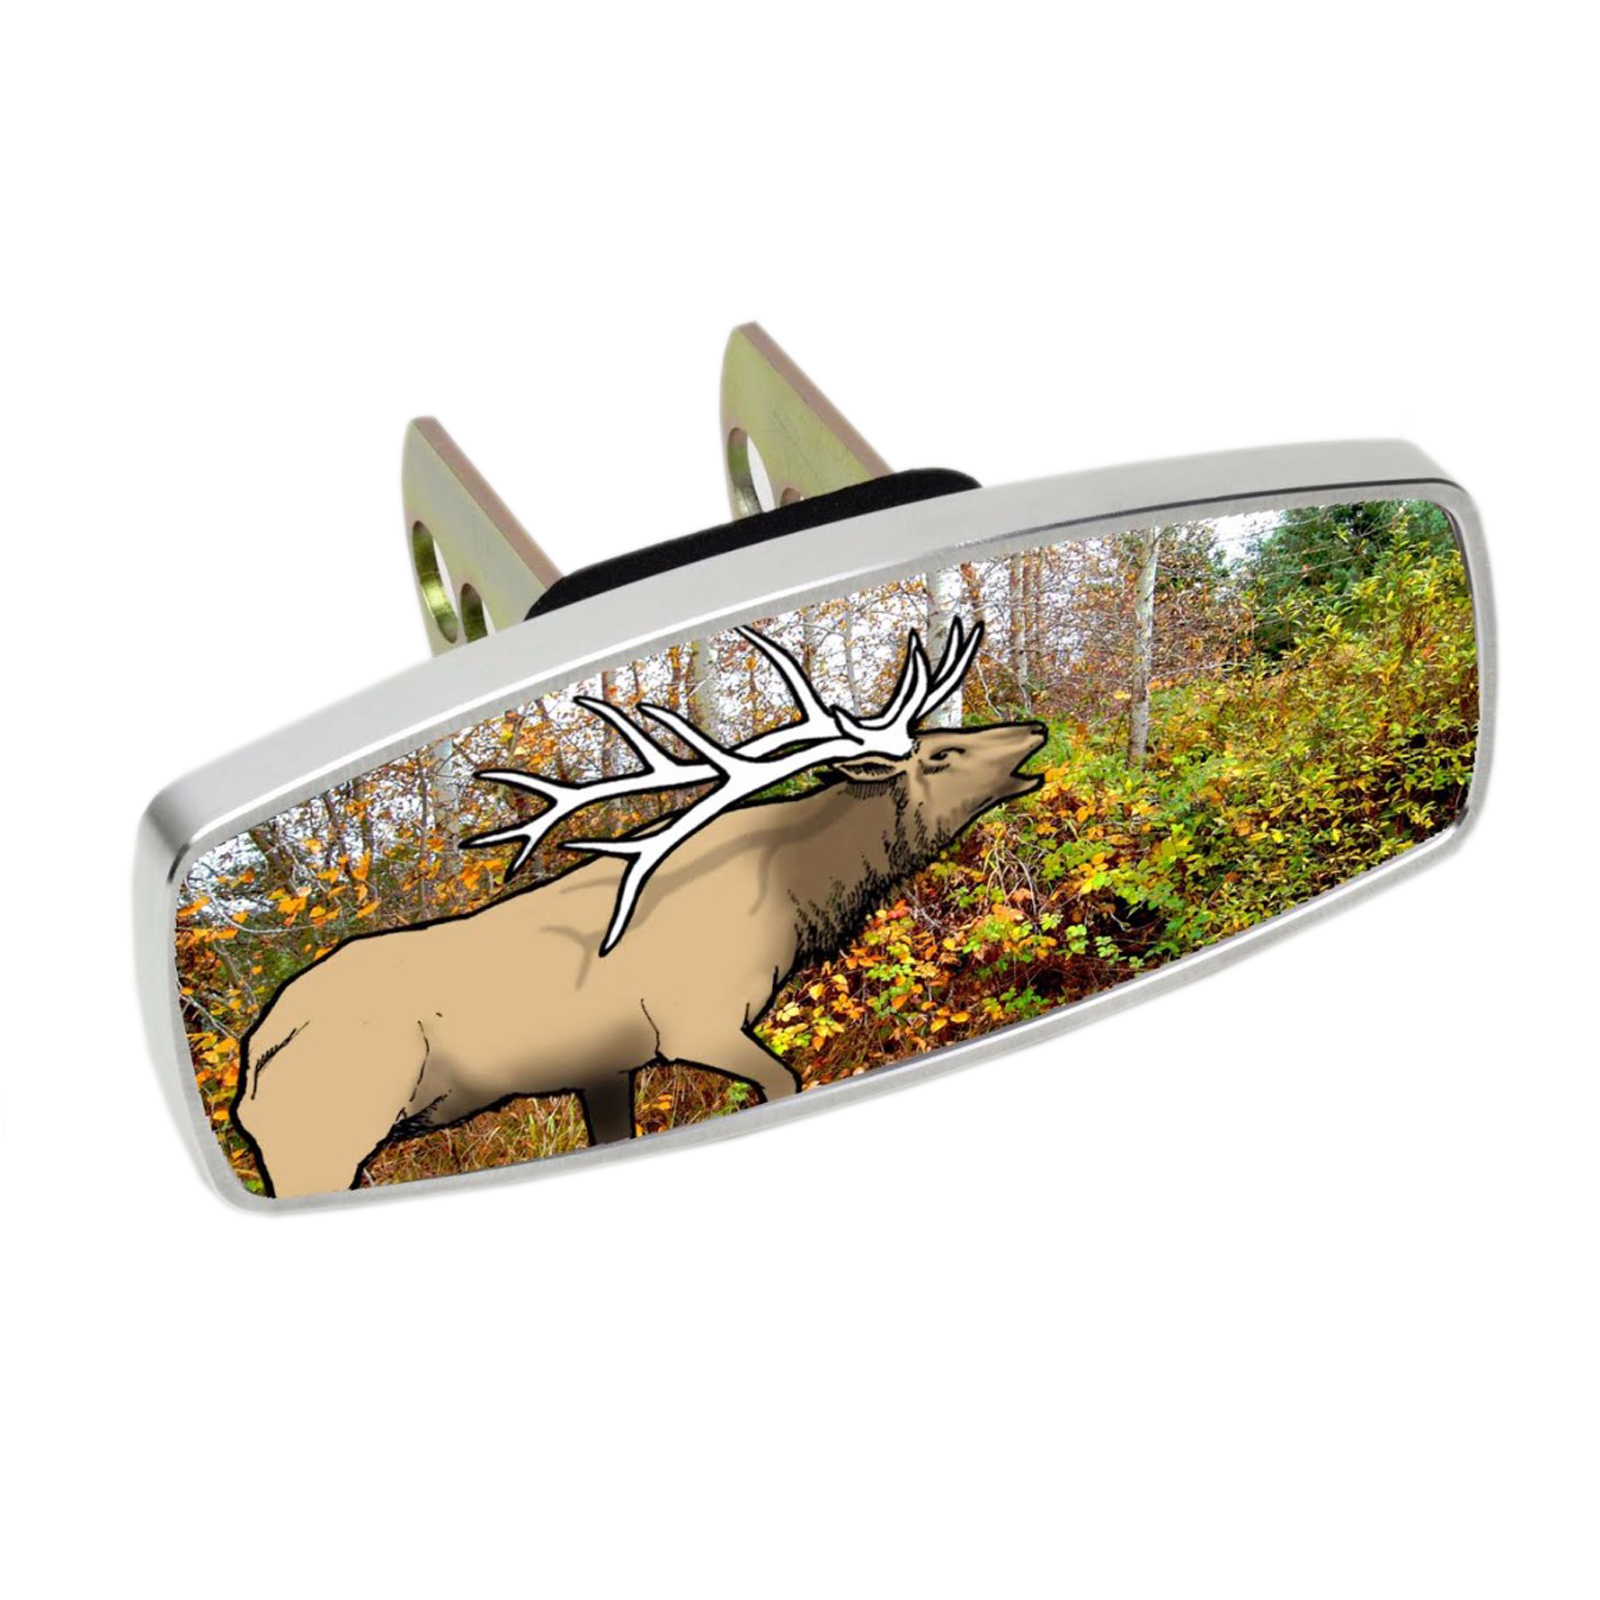 HitchMate Premier Series Hitch Cap Cover - Elk